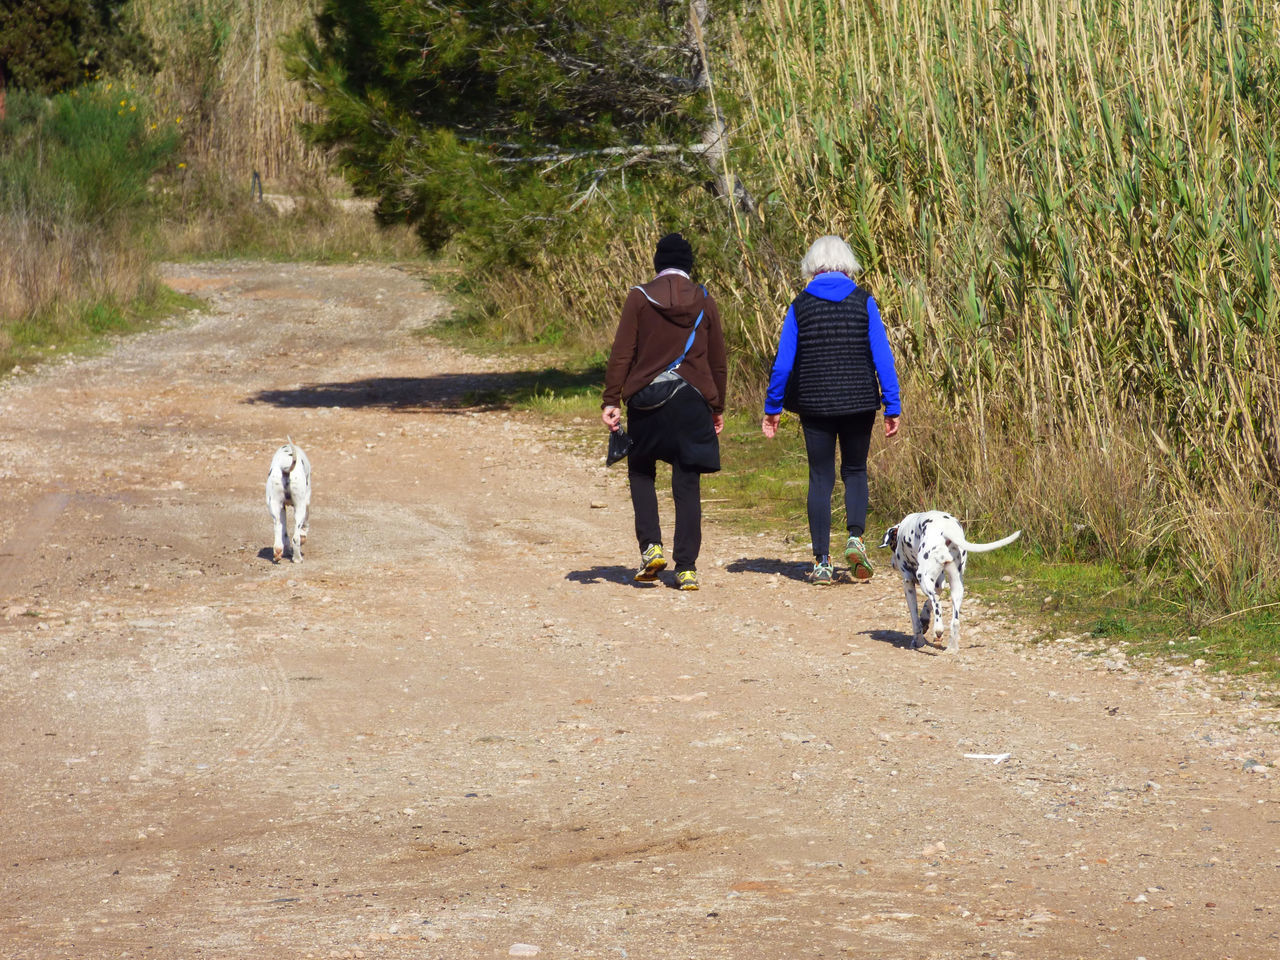 dog, pets, walking, domestic animals, rear view, one animal, mammal, real people, full length, nature, dog lead, day, outdoors, lifestyles, men, friendship, two people, bonding, women, grass, tree, adult, people